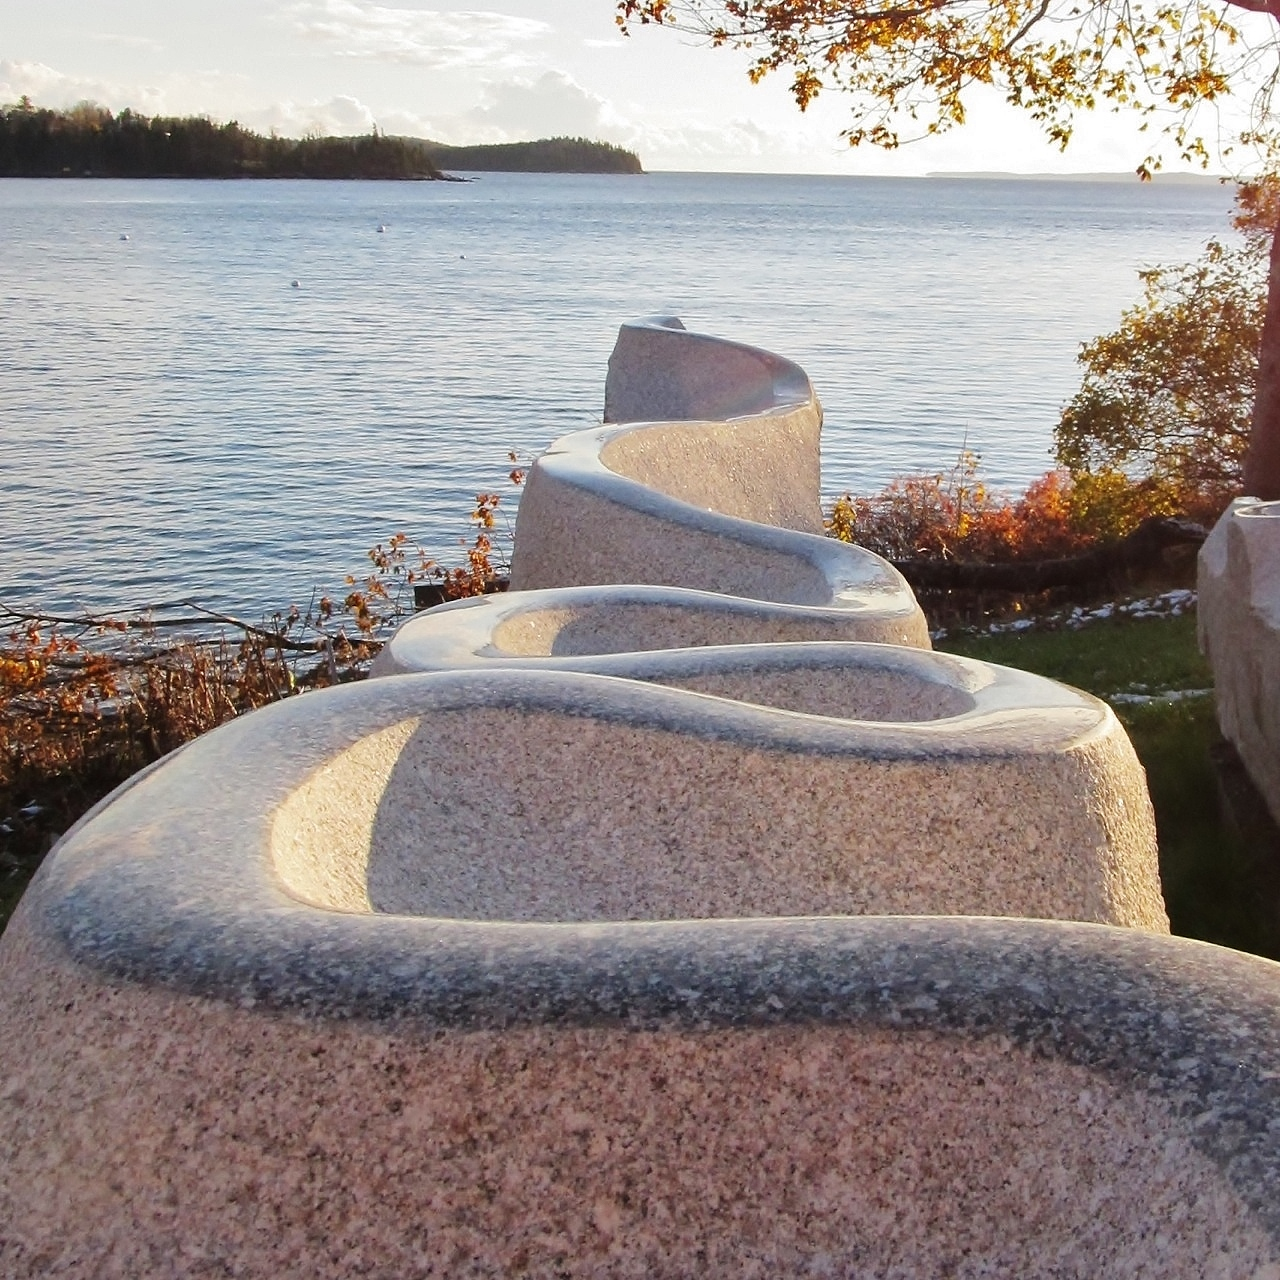 "•	Home and Away, Lavender Gray Maine Granite, 9'-2"" H x 7'-10"" W x 22'-10"" W Bob Leverich"